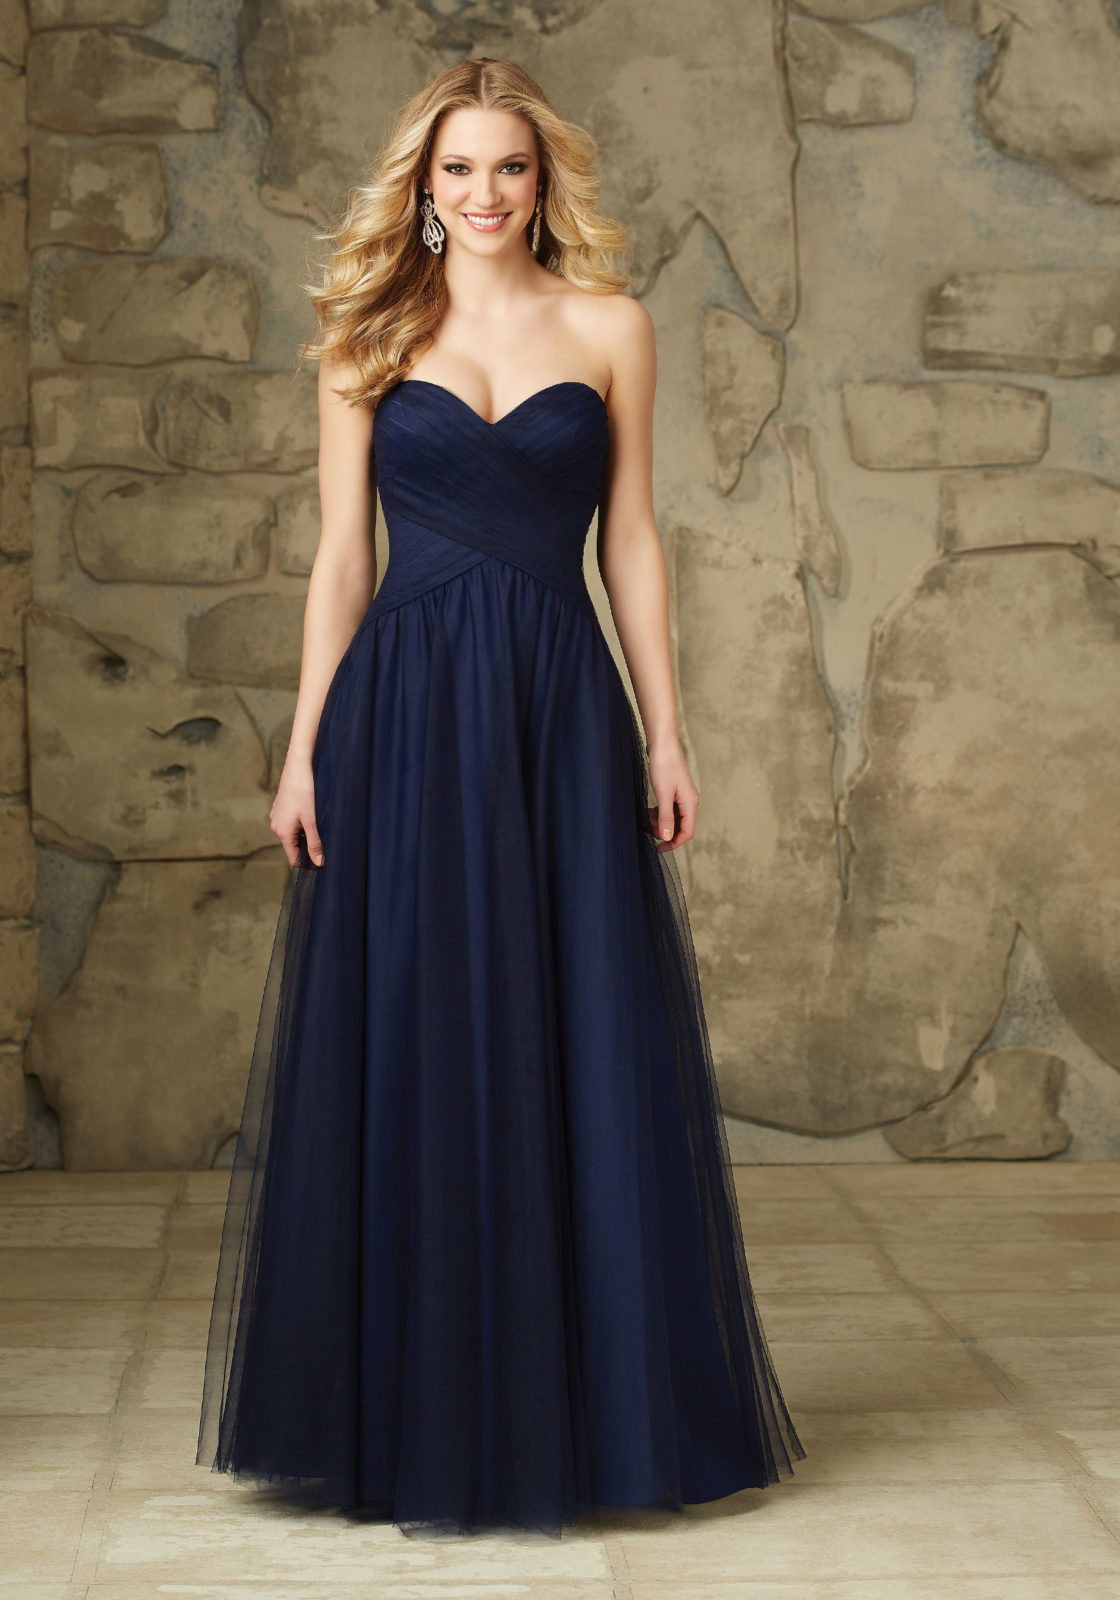 Compare prices on navy tulle bridesmaid dresses online shopping navy blue long tulle bridesmaid dress 2017 sweetheart pleated cheap plus size wedding party dress maid ombrellifo Image collections